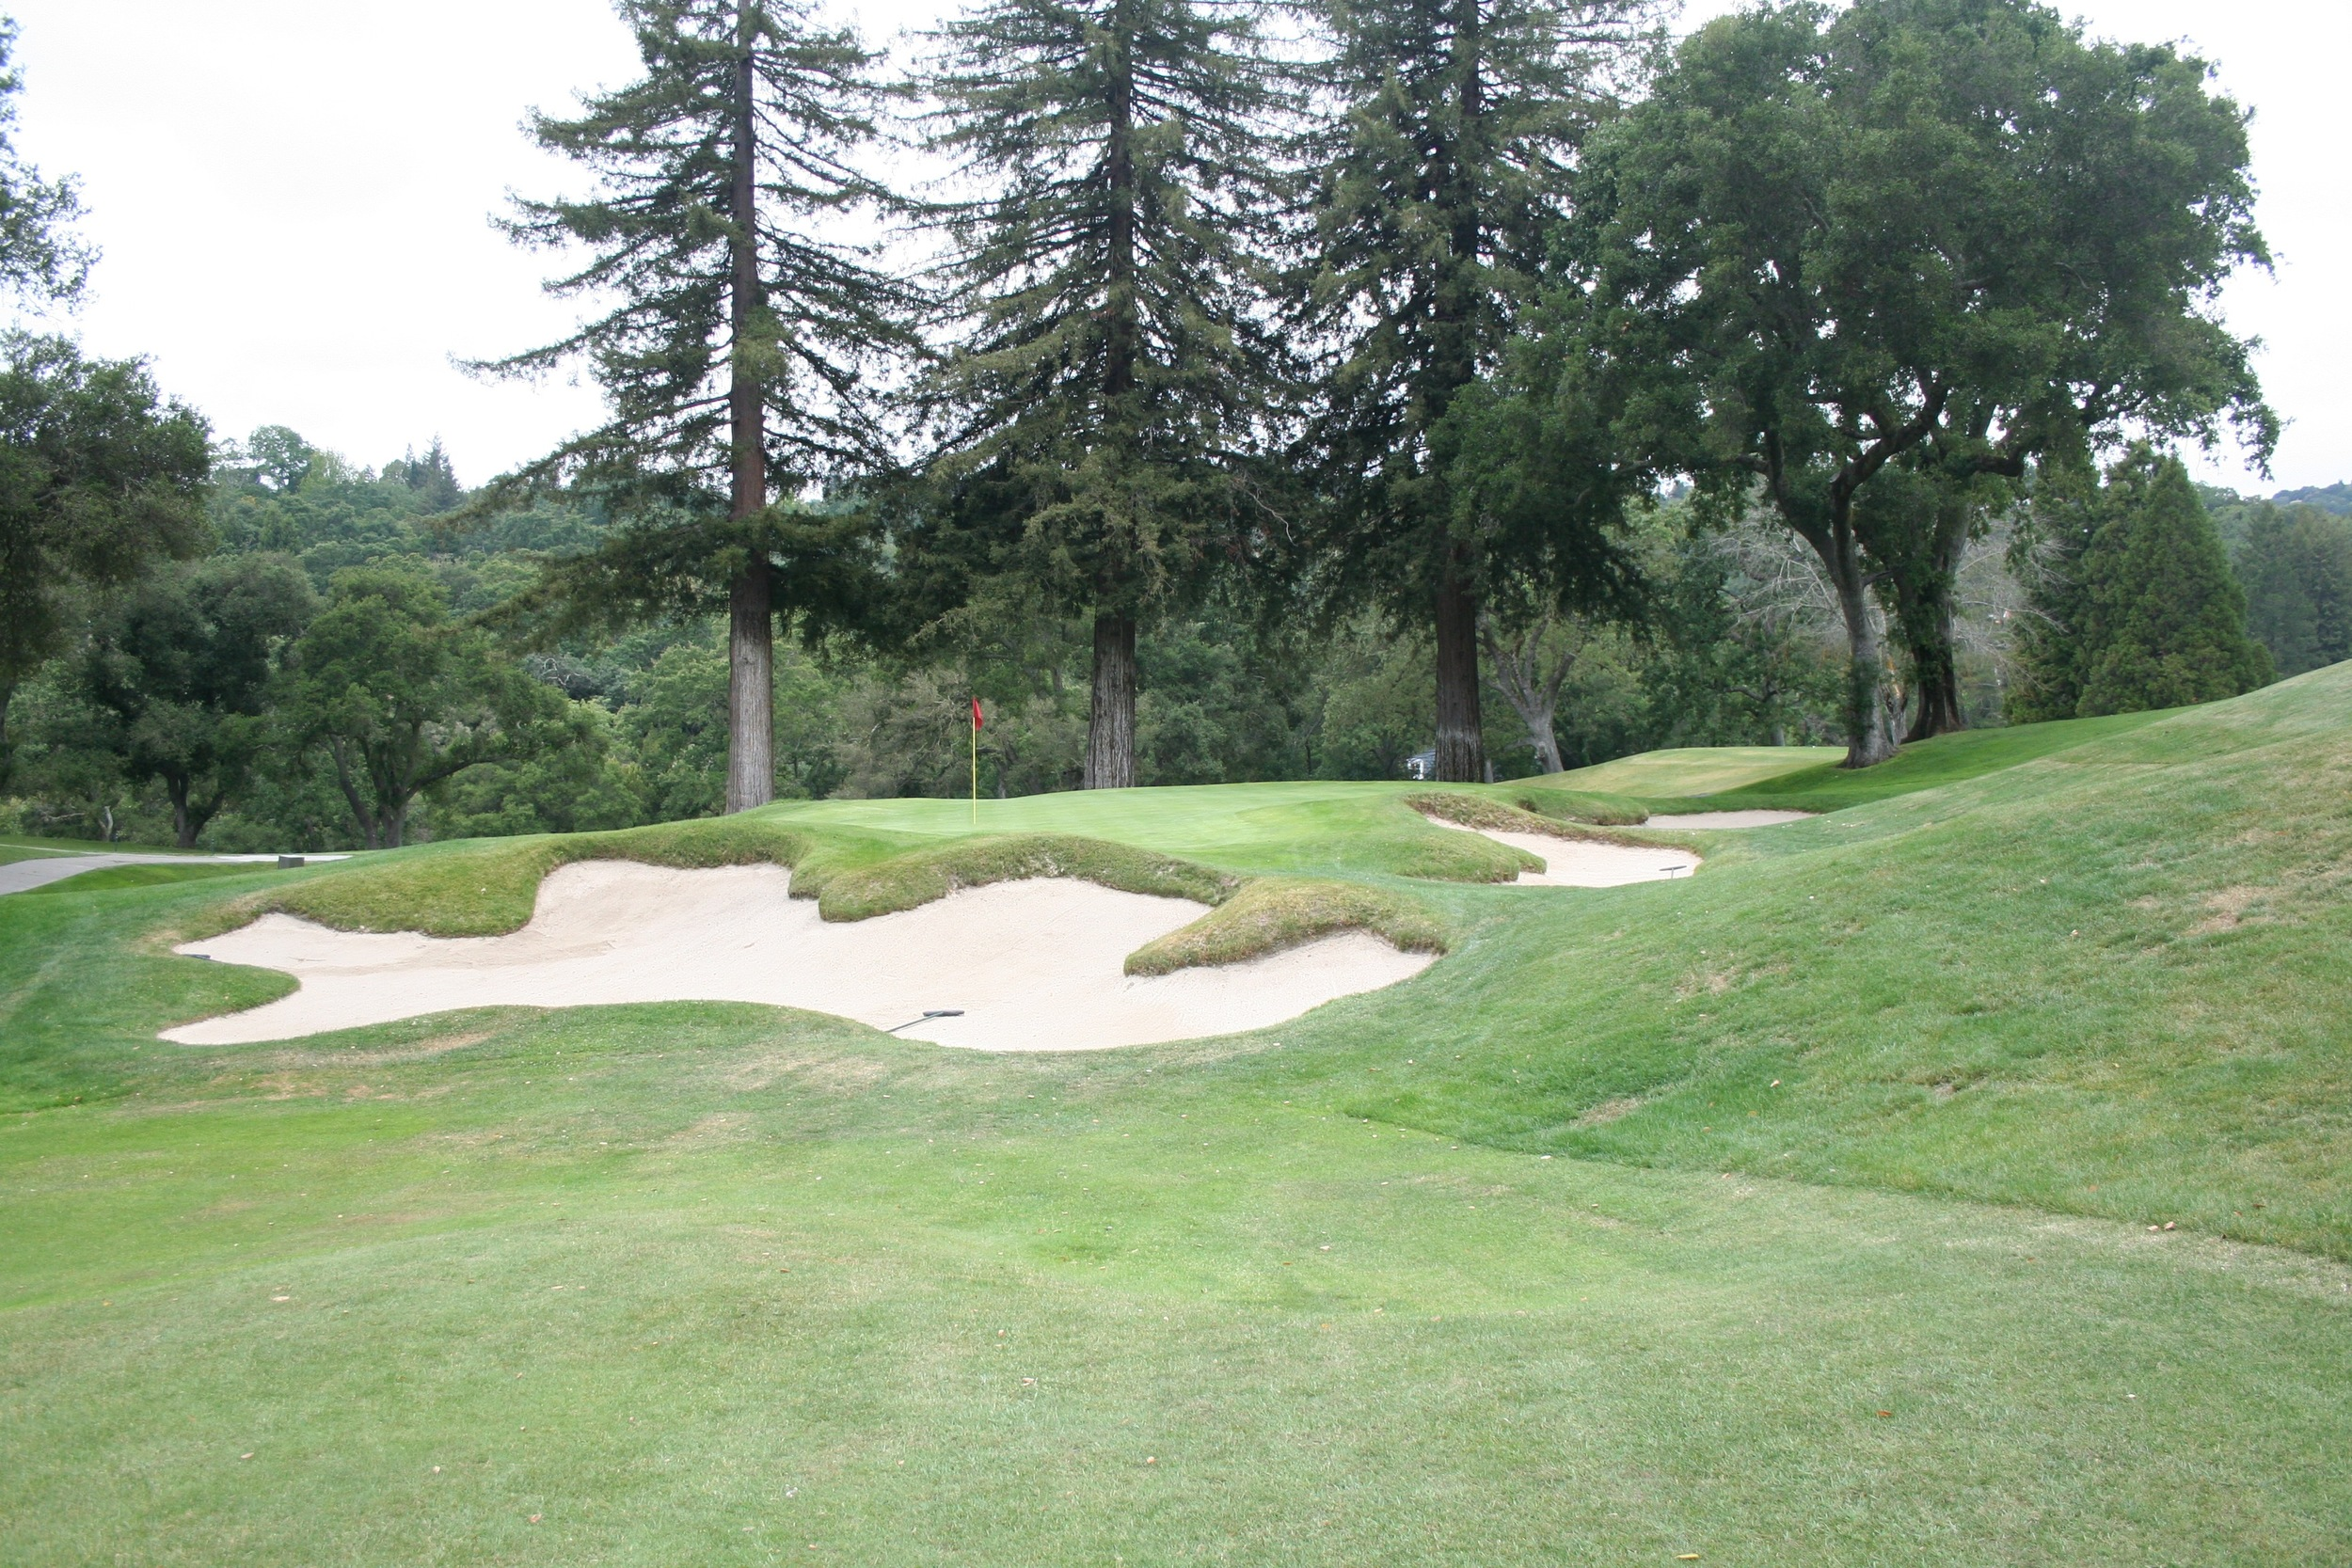 hochstein-design-orinda-cc-beforeafter-hole-8-1.jpg